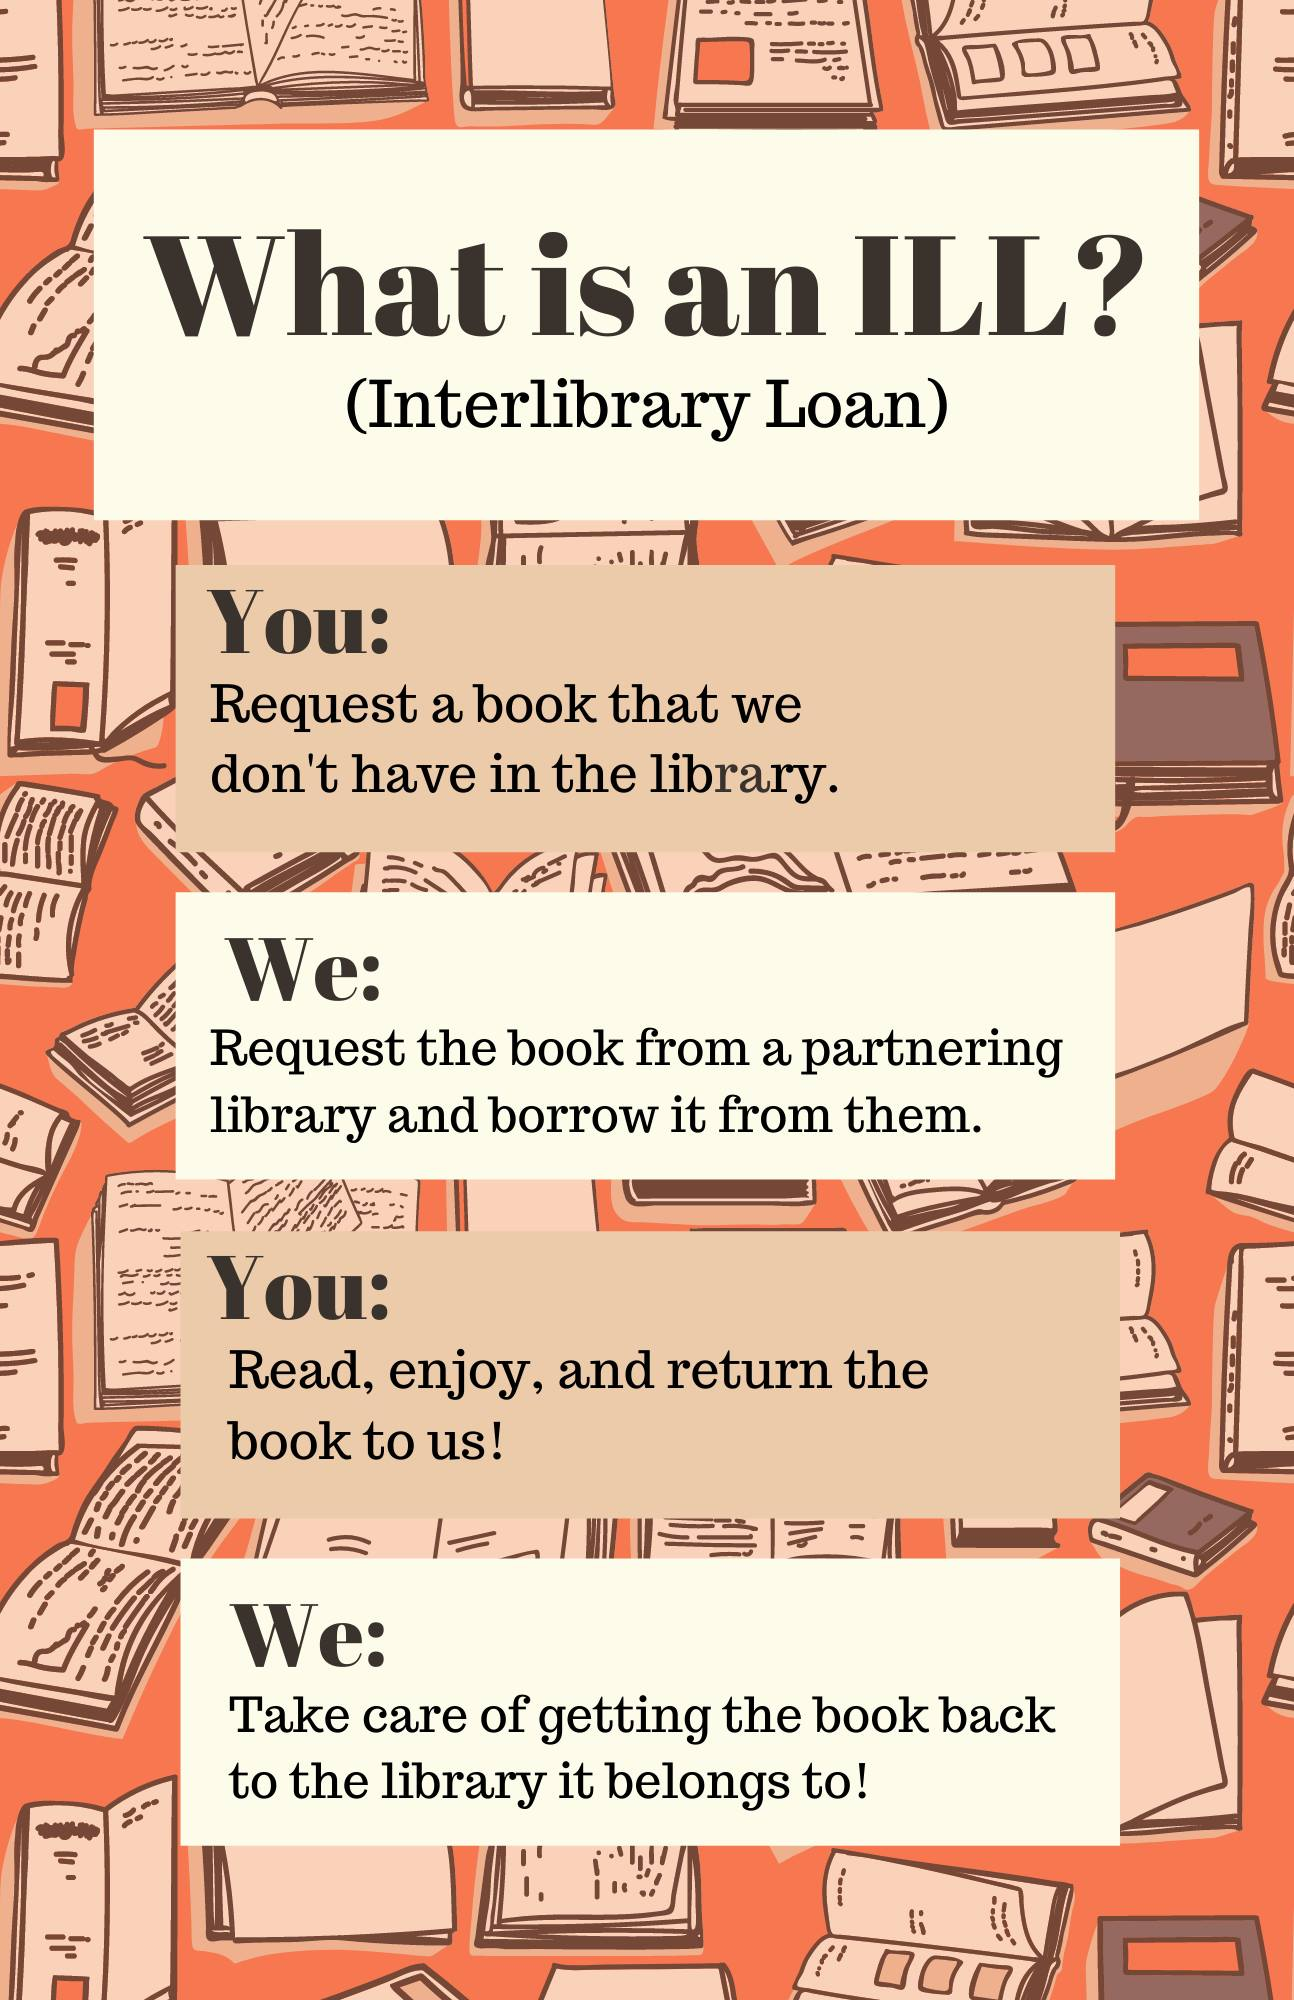 What is Interlibrary Loan?